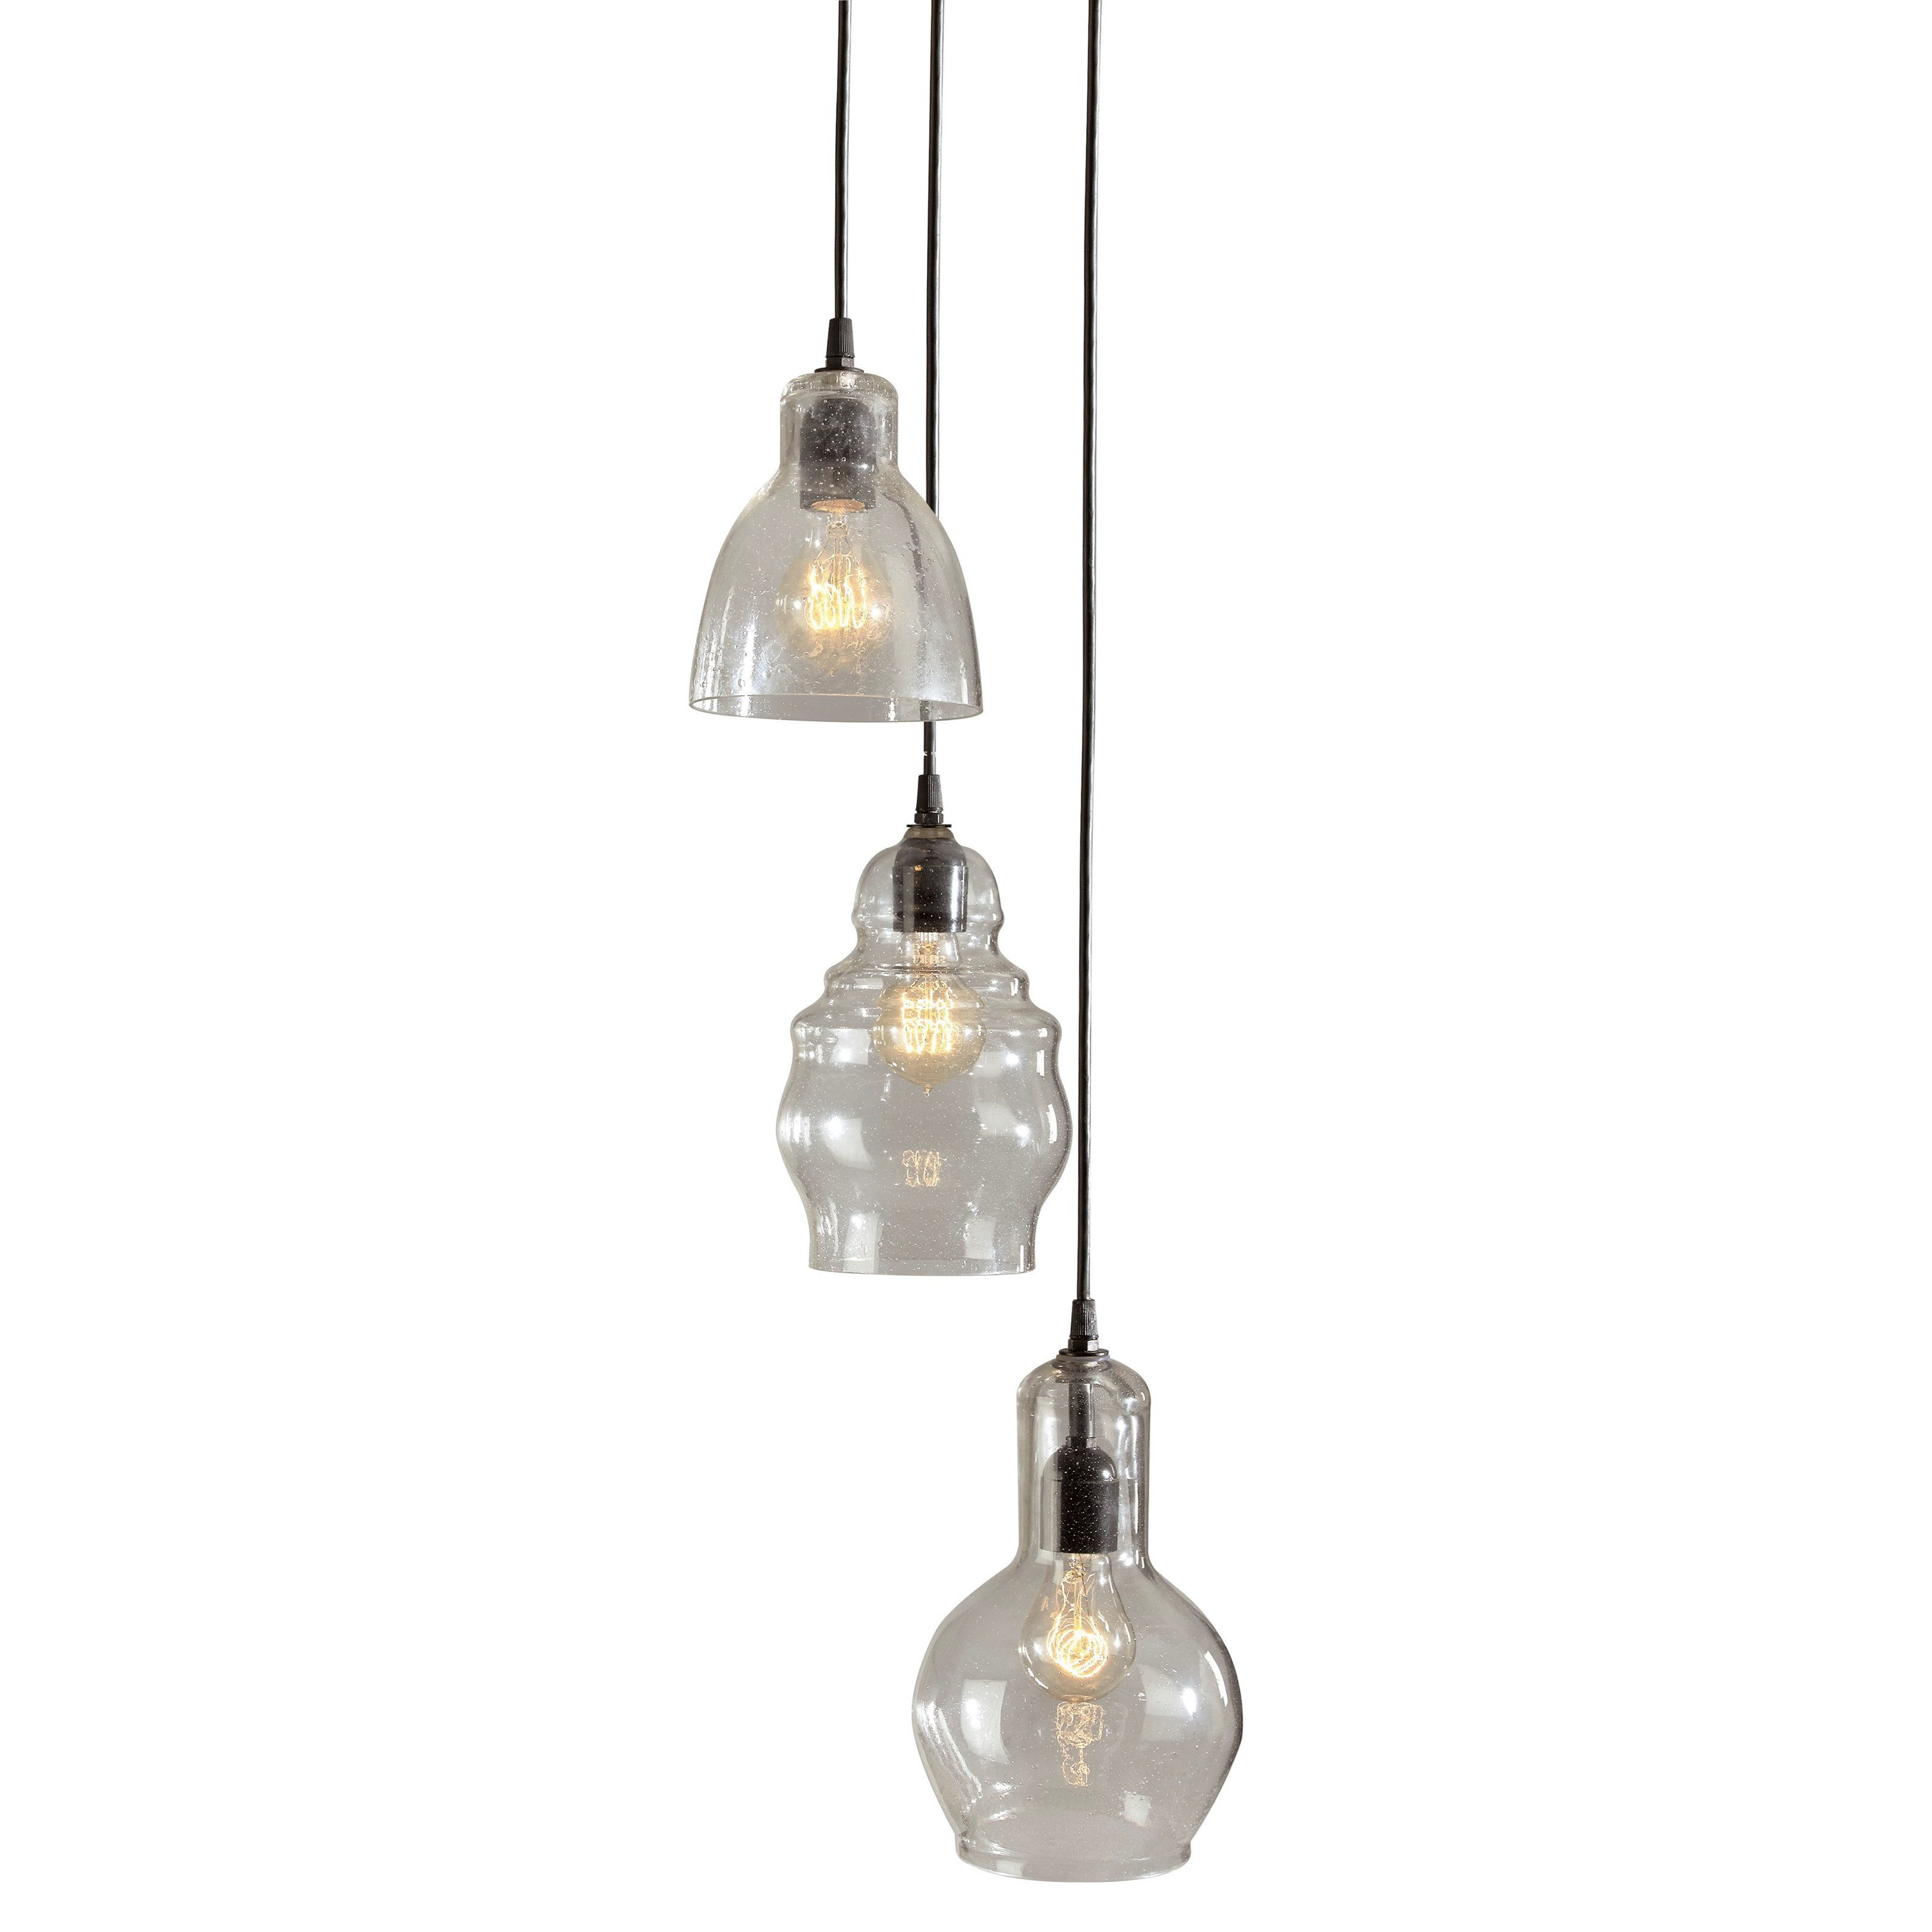 lights item by pendant clear number glass ashley signature design aldelphia ceiling products ceilings light